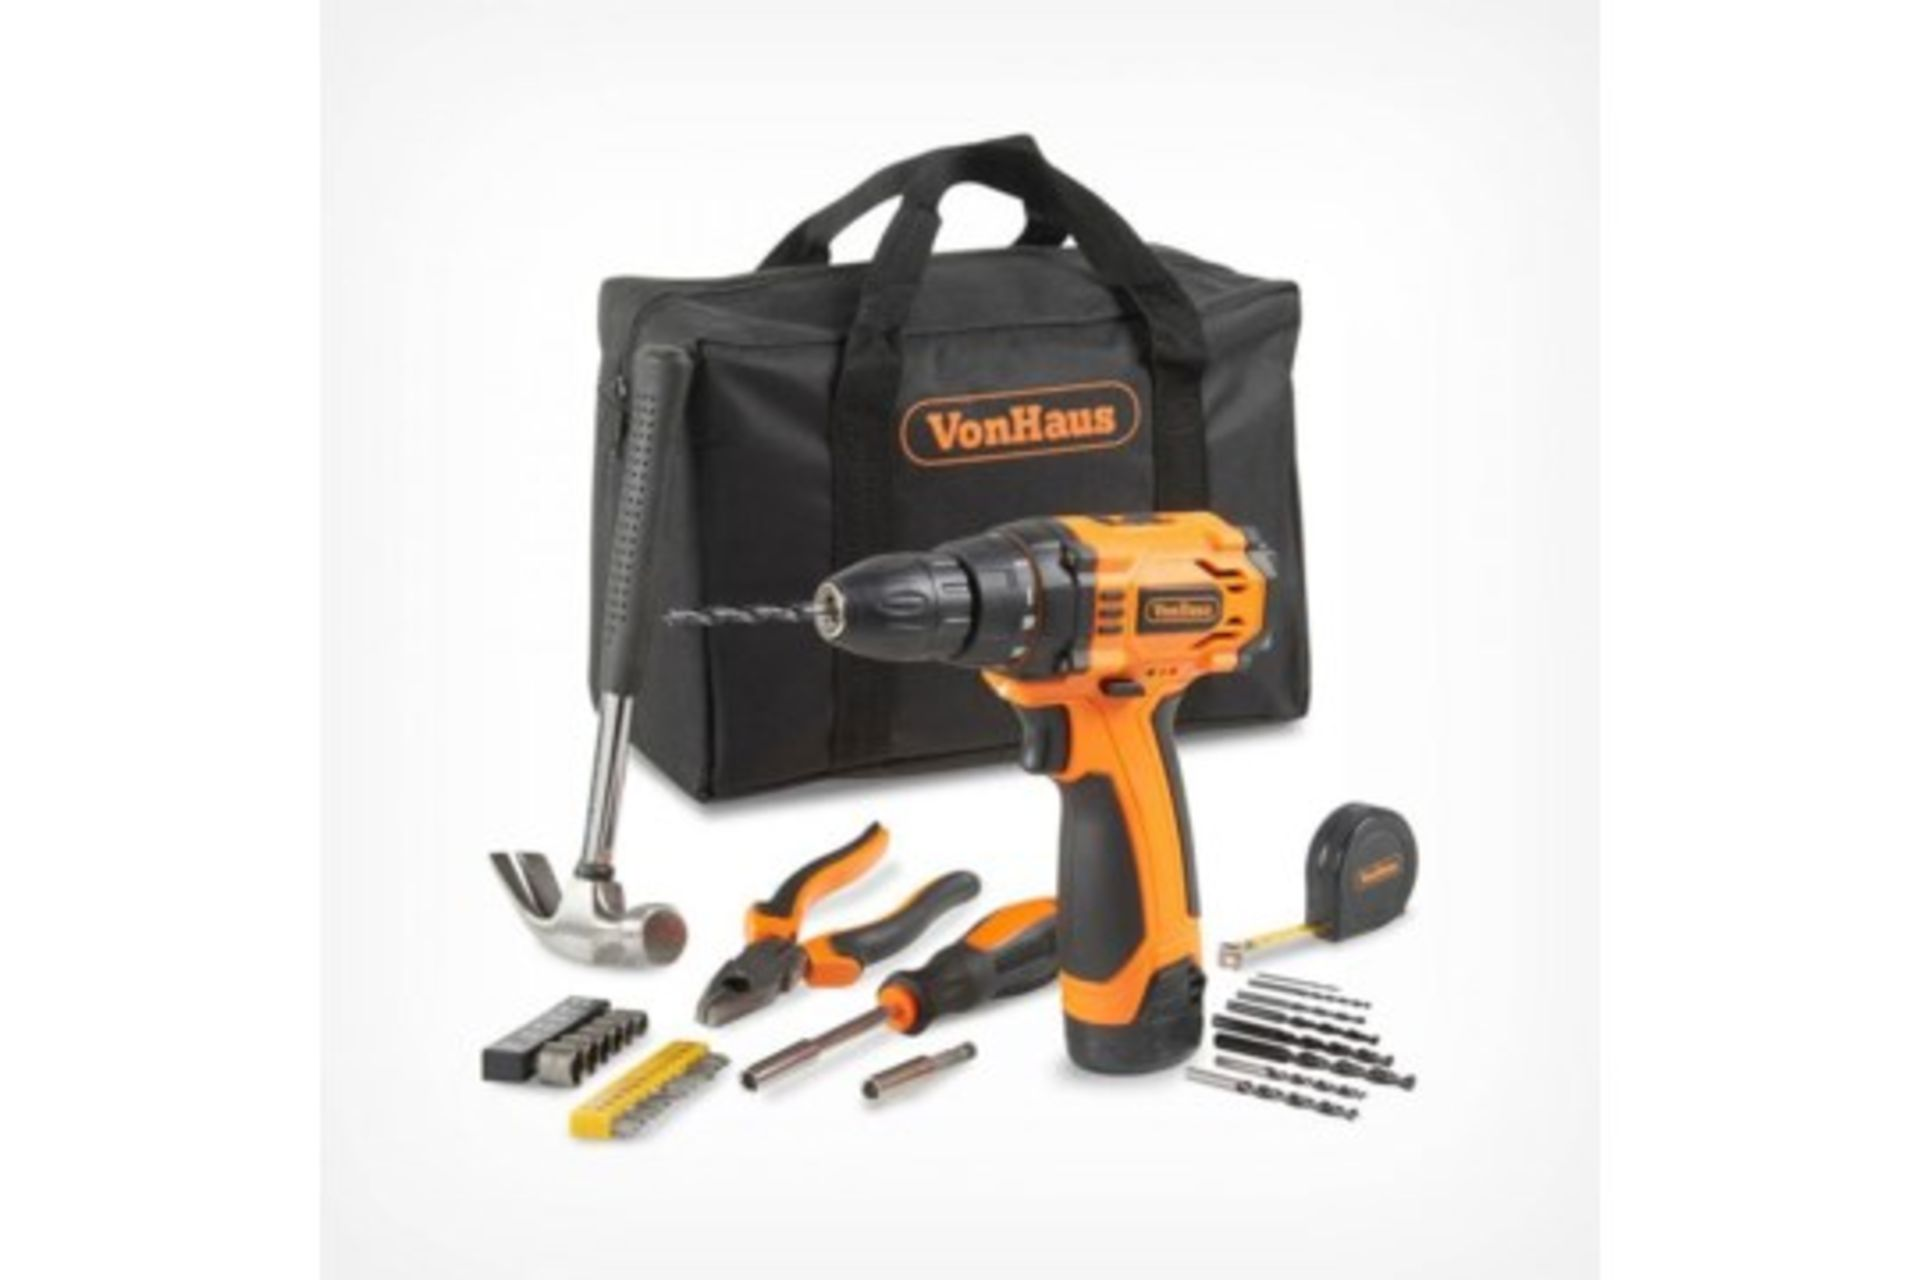 Los 74 - (V330) 12V Drill with Accessory Set Tackle a wide range of DIY projects and home improvements w...